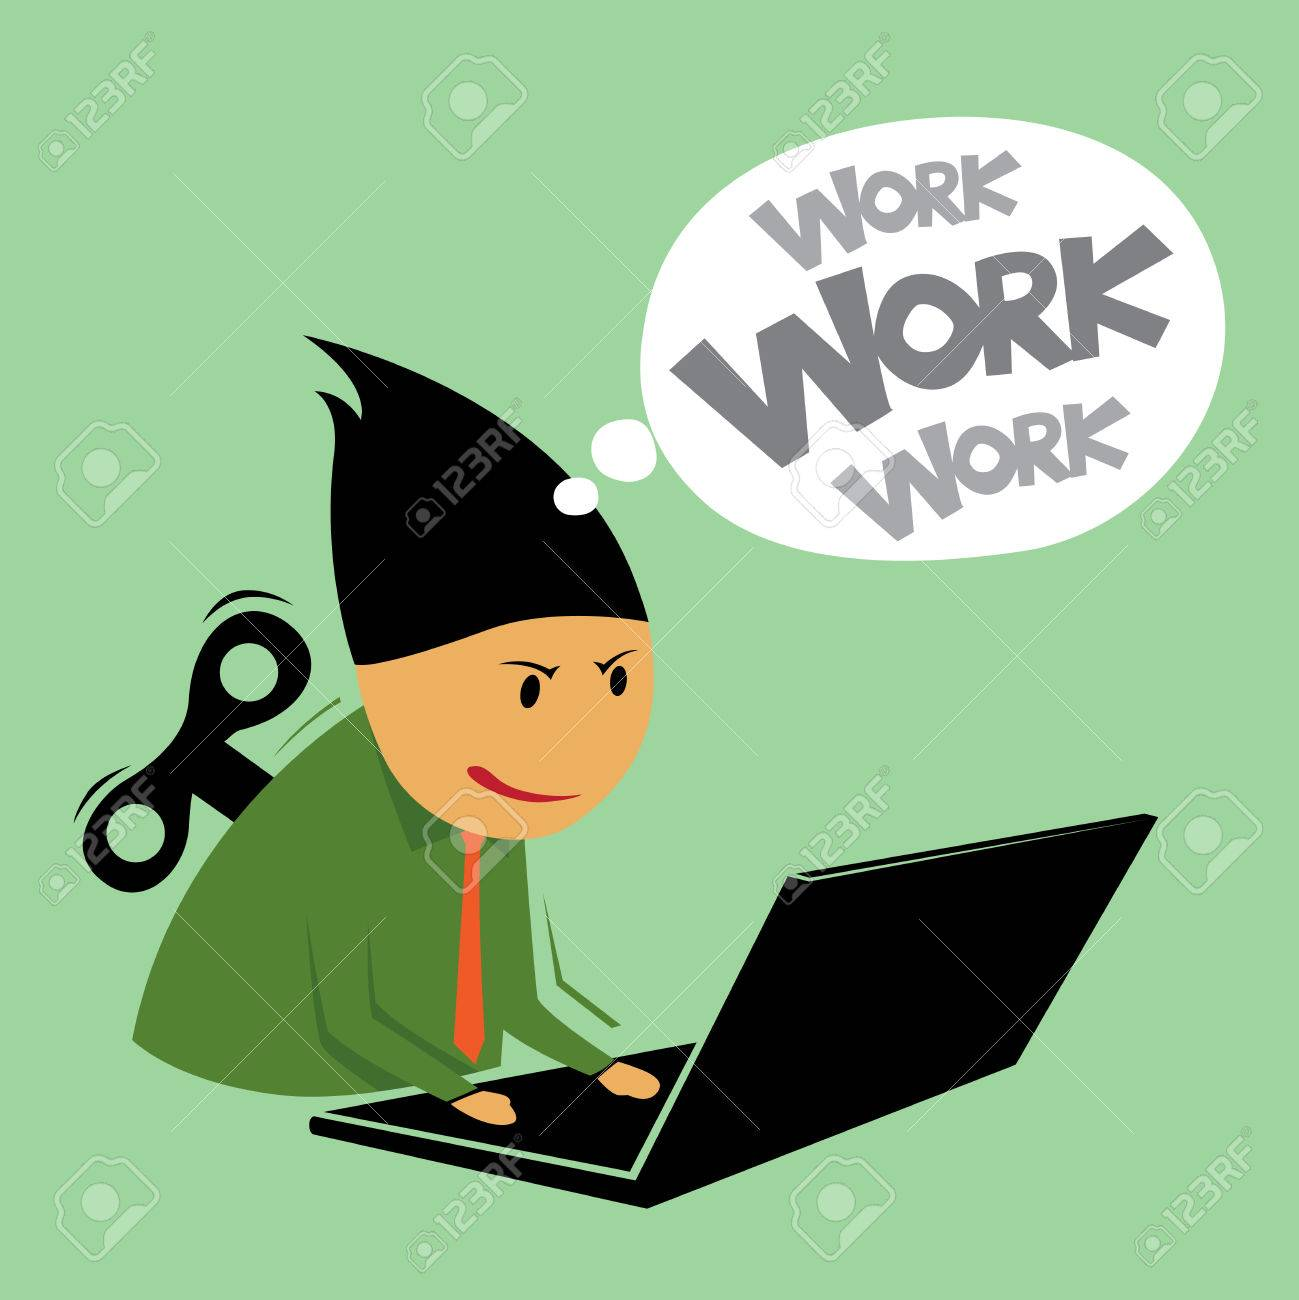 Abstract hard work businessman, Illustration by vector design EPS10 Stock Vector - 23263218